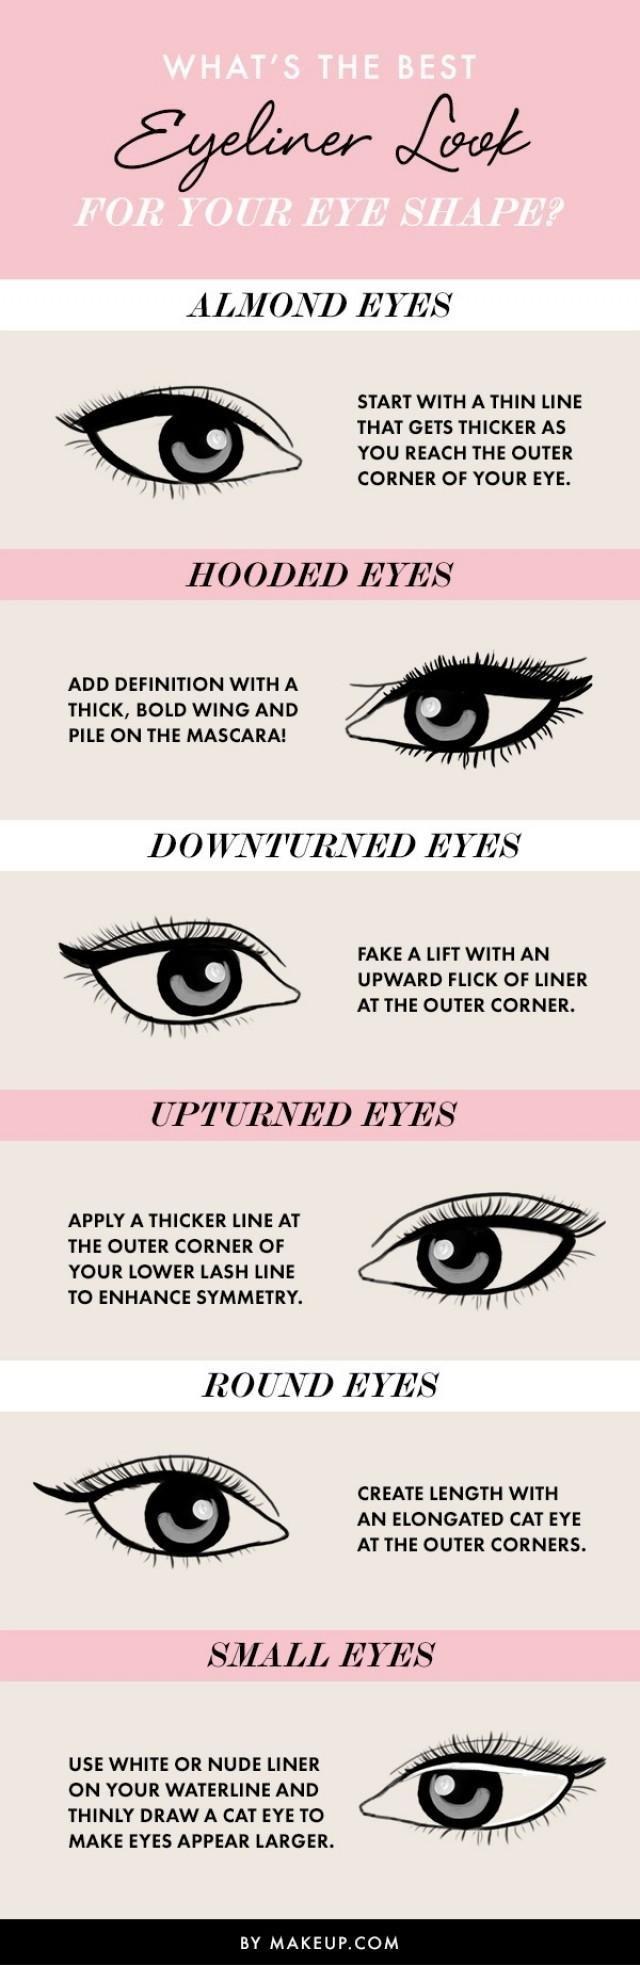 Whats The Best Eyeliner Look For Your Eye Shape Weddbook